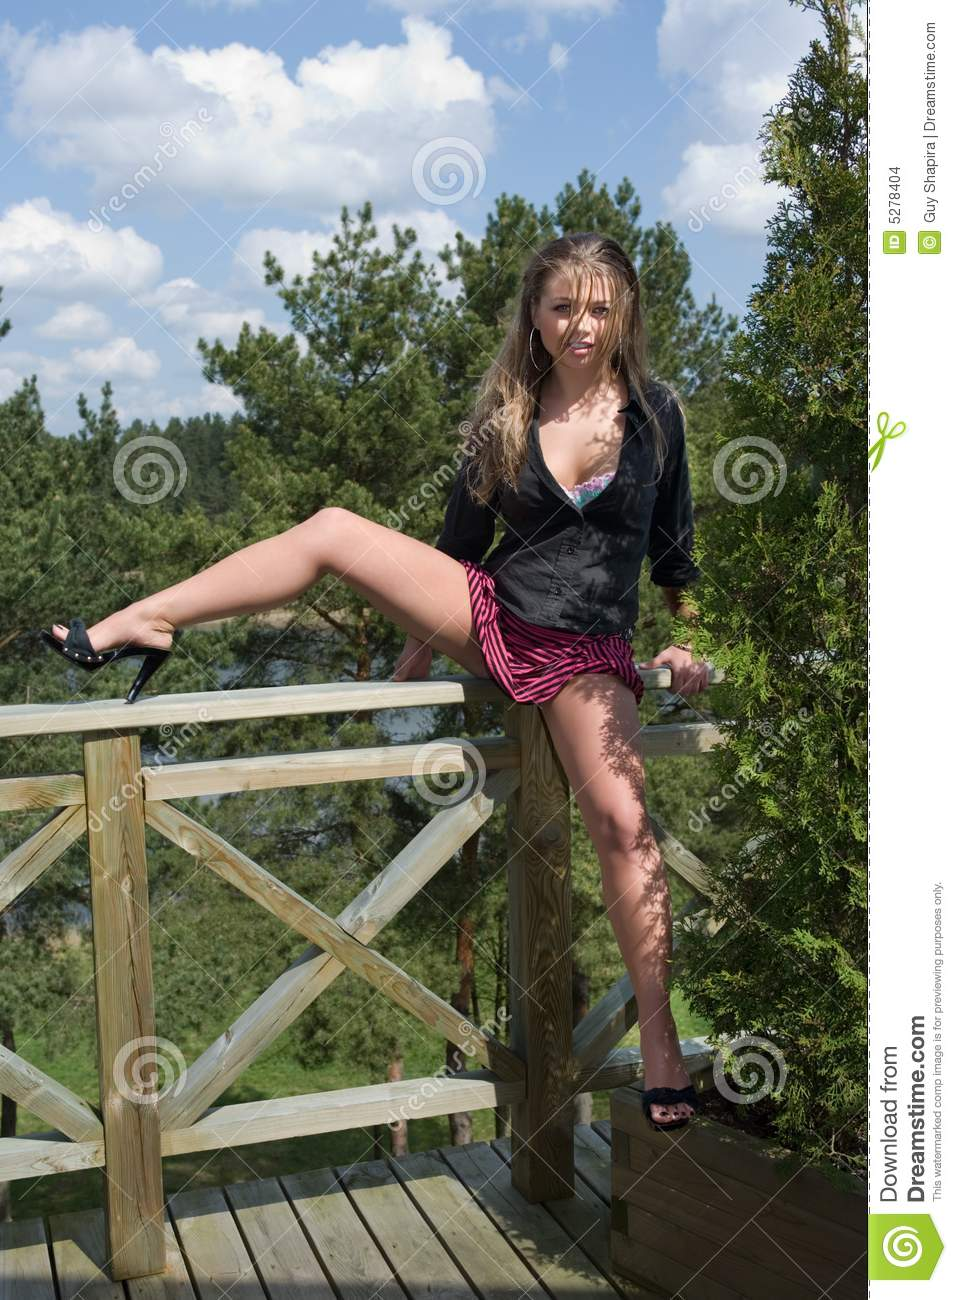 Young Girl In Short Skirt Stock Images - Image: 5278404